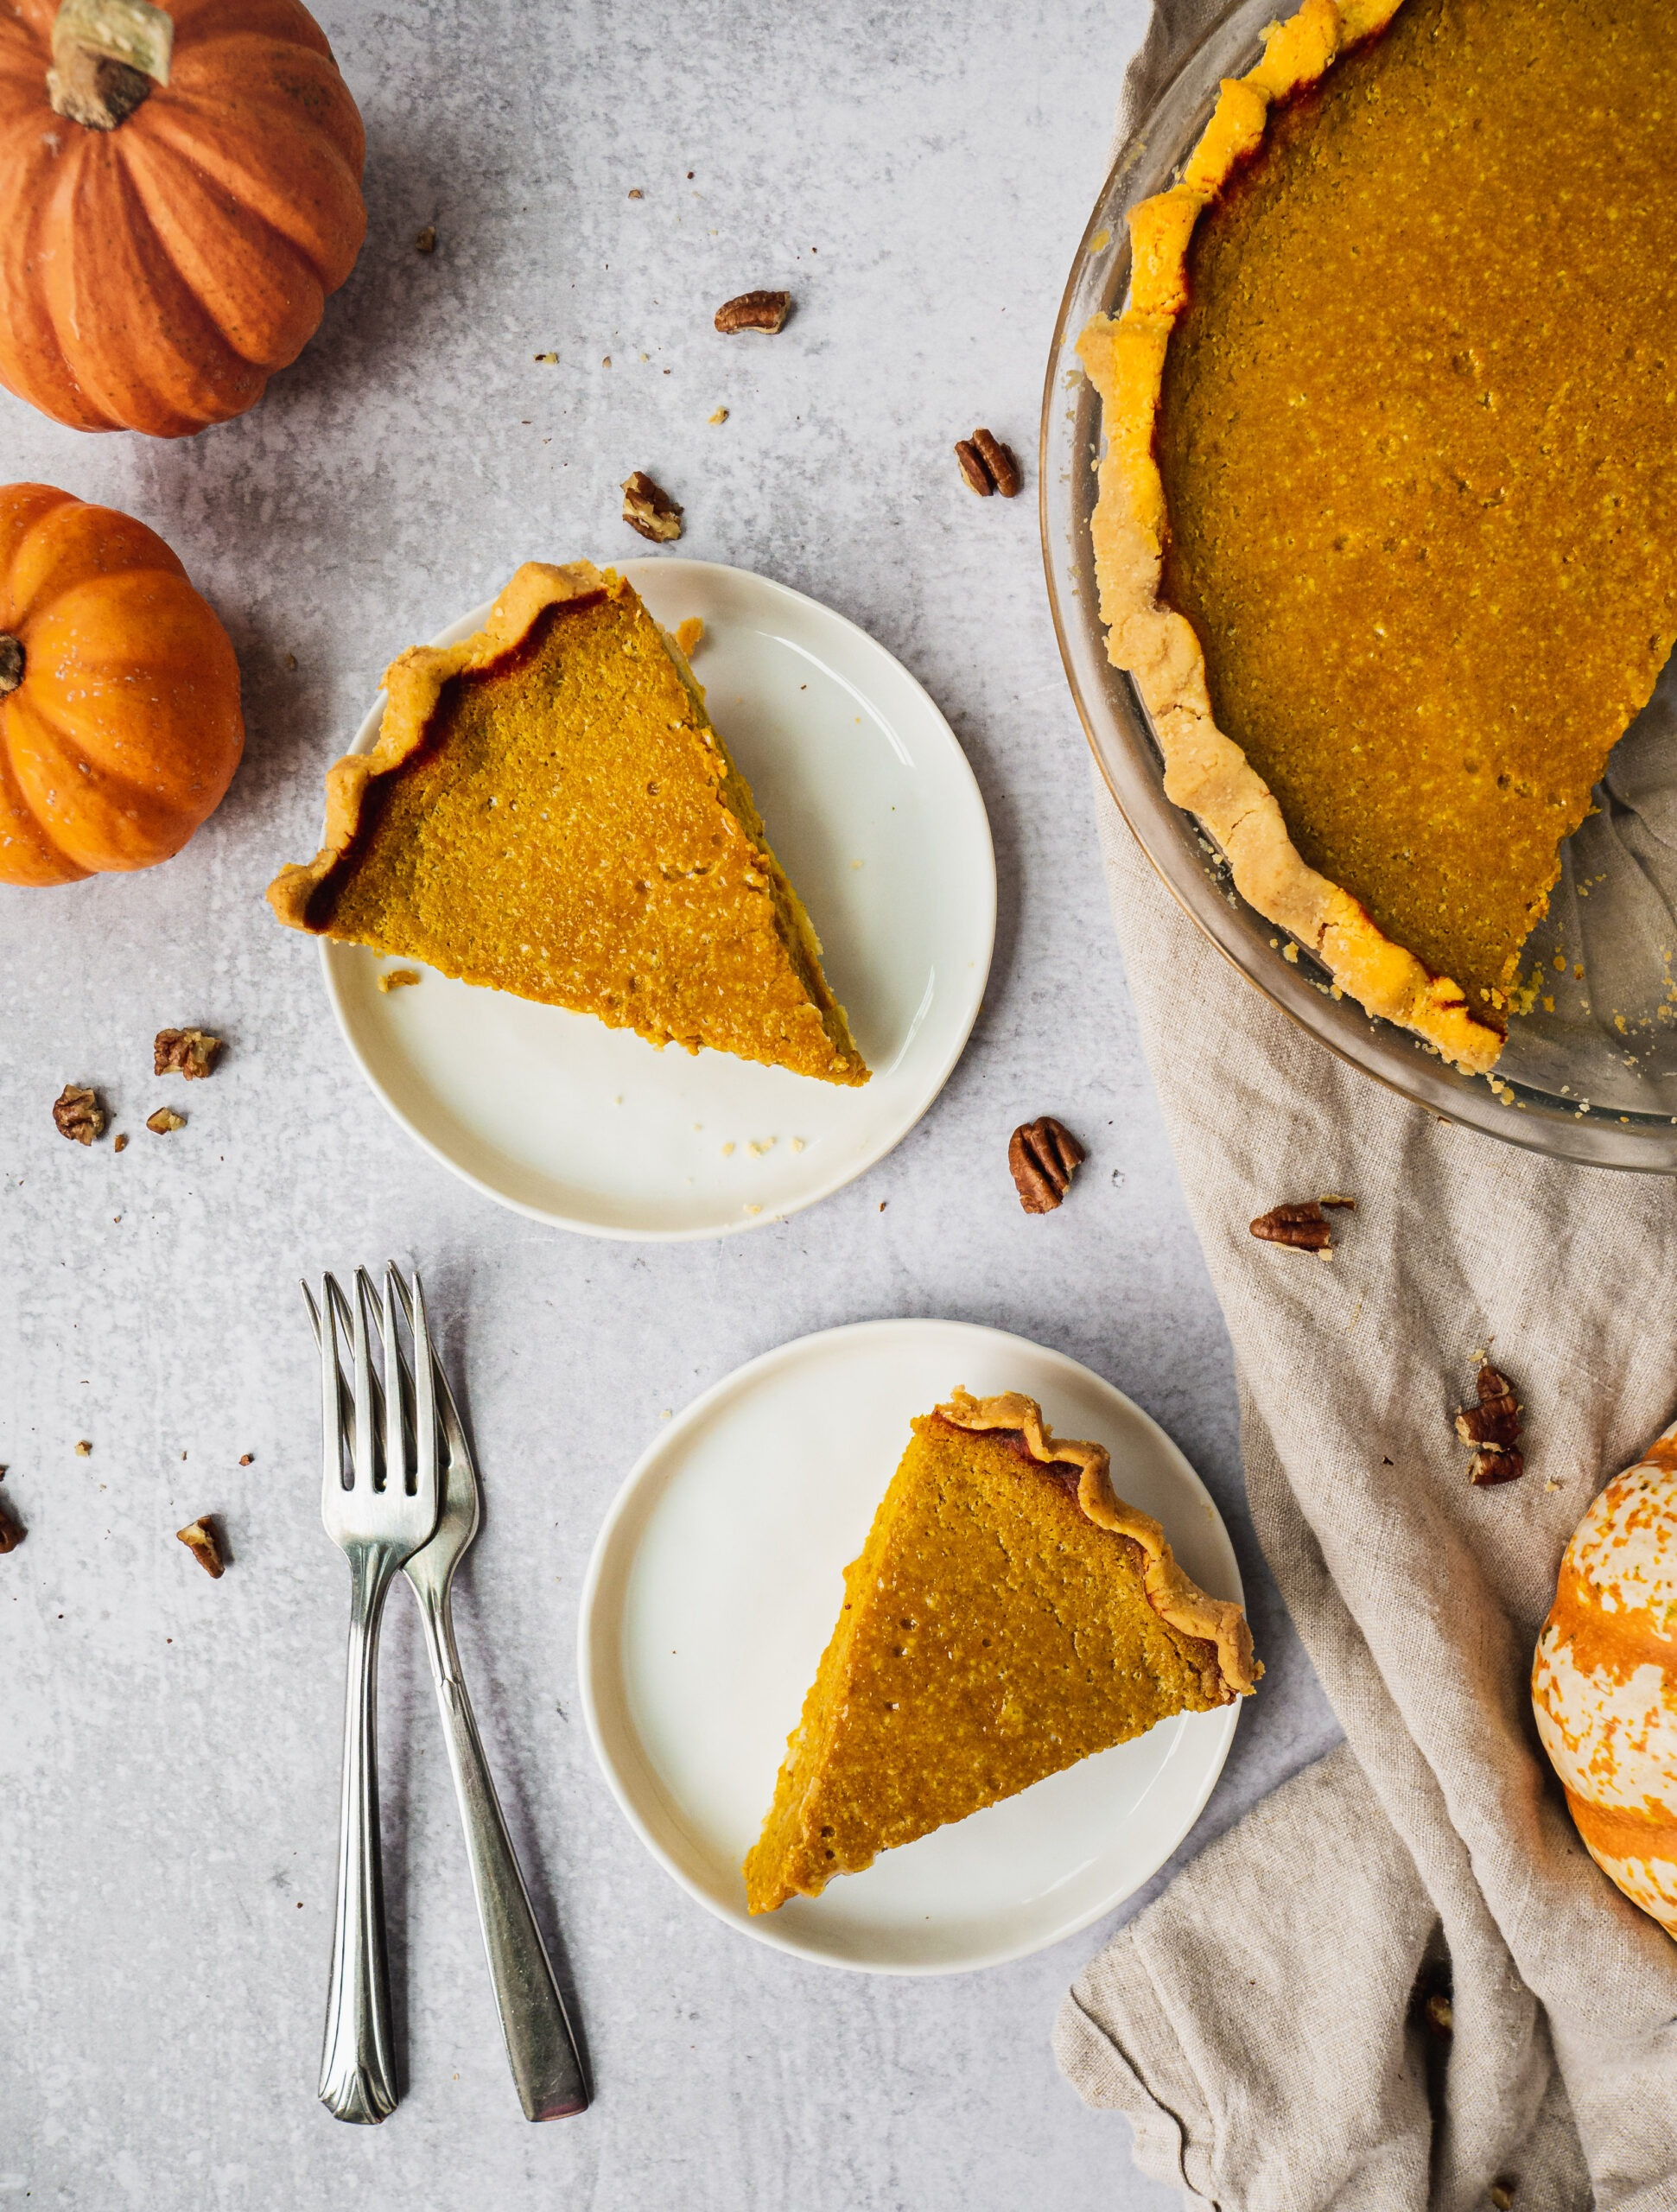 On a table there is a healthy pumpkin pie being sliced to serve. There are 3 little pumpkins around the pie. Two slices of pumpkin pies are placed on little plates, topped with whipped cream and pumpkin spice. There are two forks on the side. Pecans are sprinkled over the table